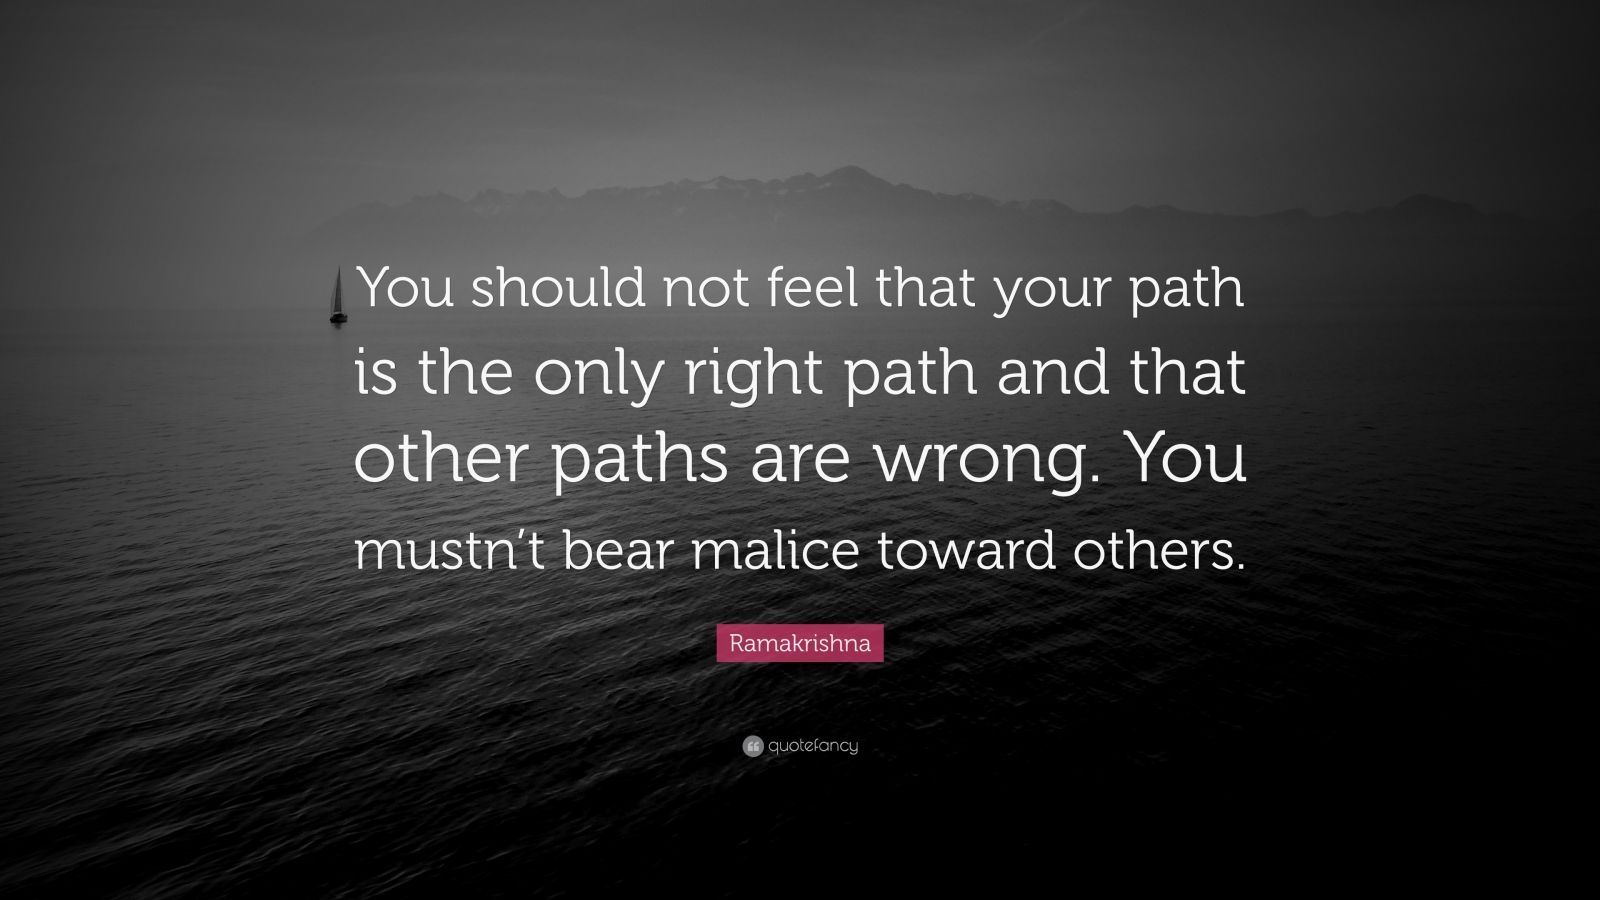 """Ramakrishna Quote: """"You should not feel that your path is the only right path and that other paths are wrong. You mustn't bear malice toward others."""""""